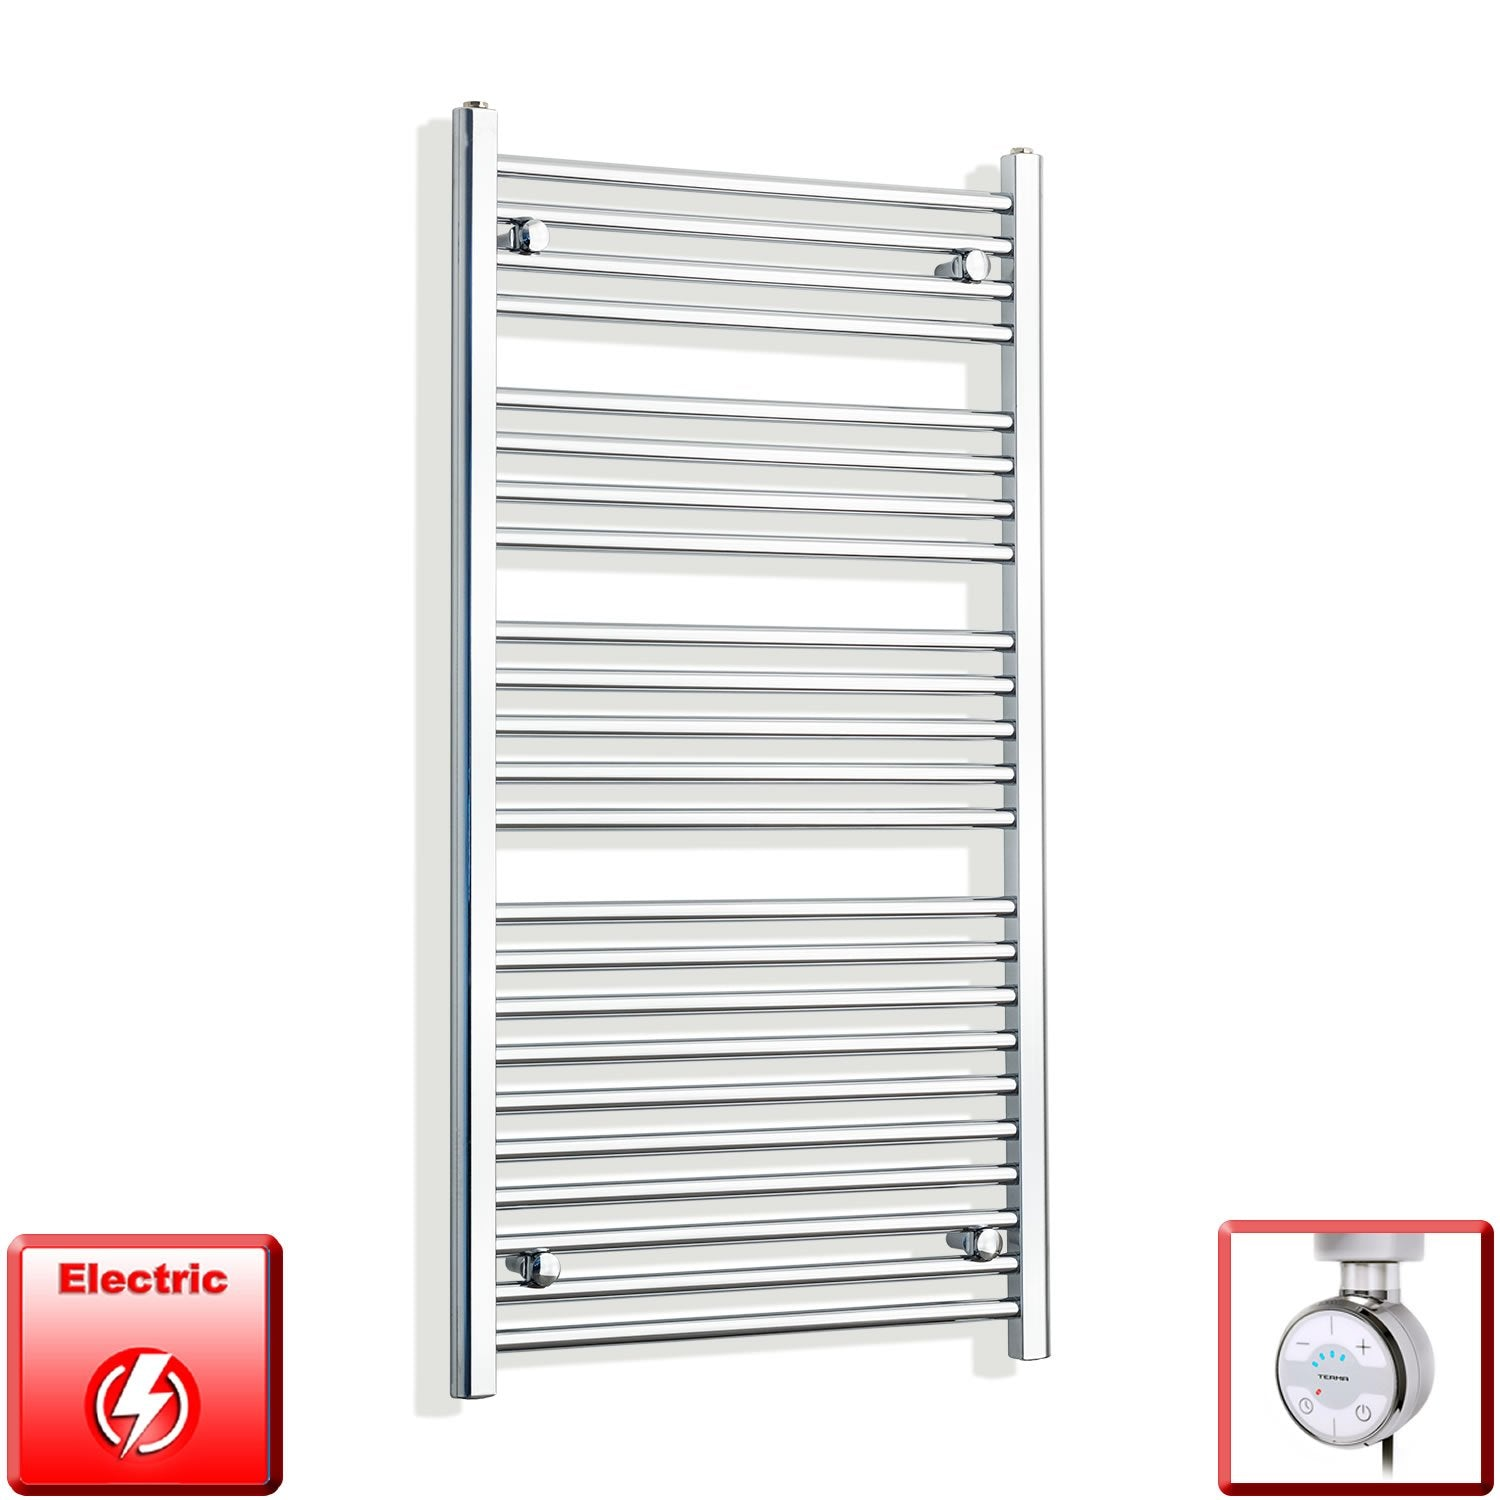 700mm Wide 1200mm High Flat Or Curved Chrome Pre-Filled Electric Heated Towel Rail Radiator HTR,MOA Thermostatic Element / Straight